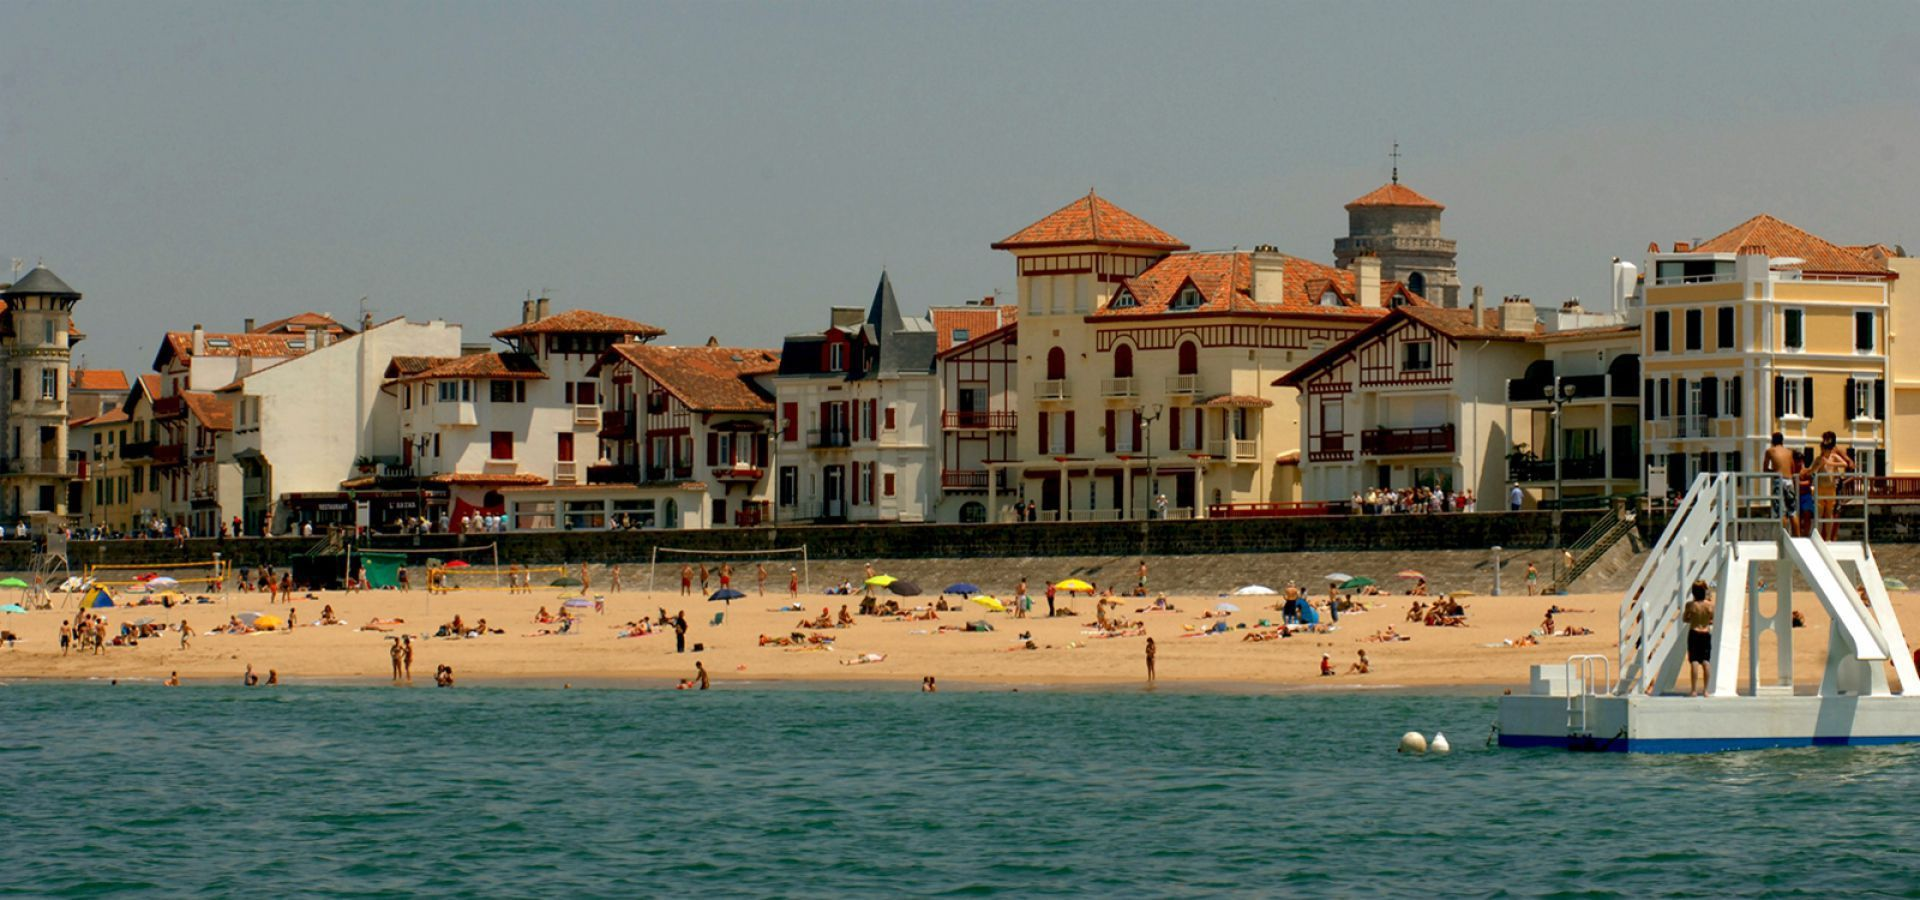 Saint jean de luz france pinterest france and beach for Club piscine st jerome liquidation